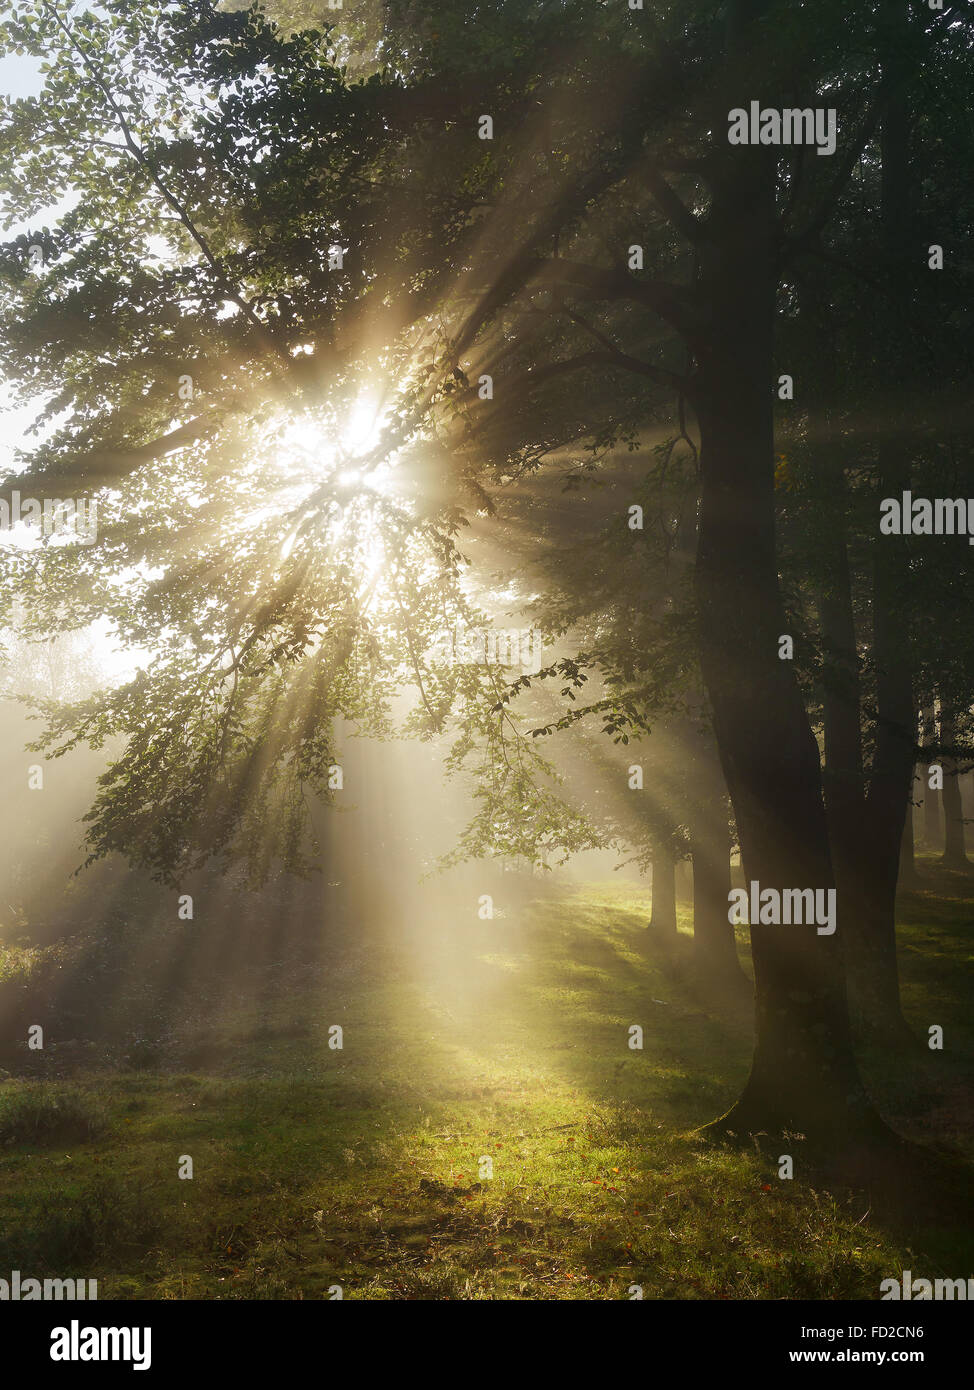 Sun beams in the forest at morning - Stock Image